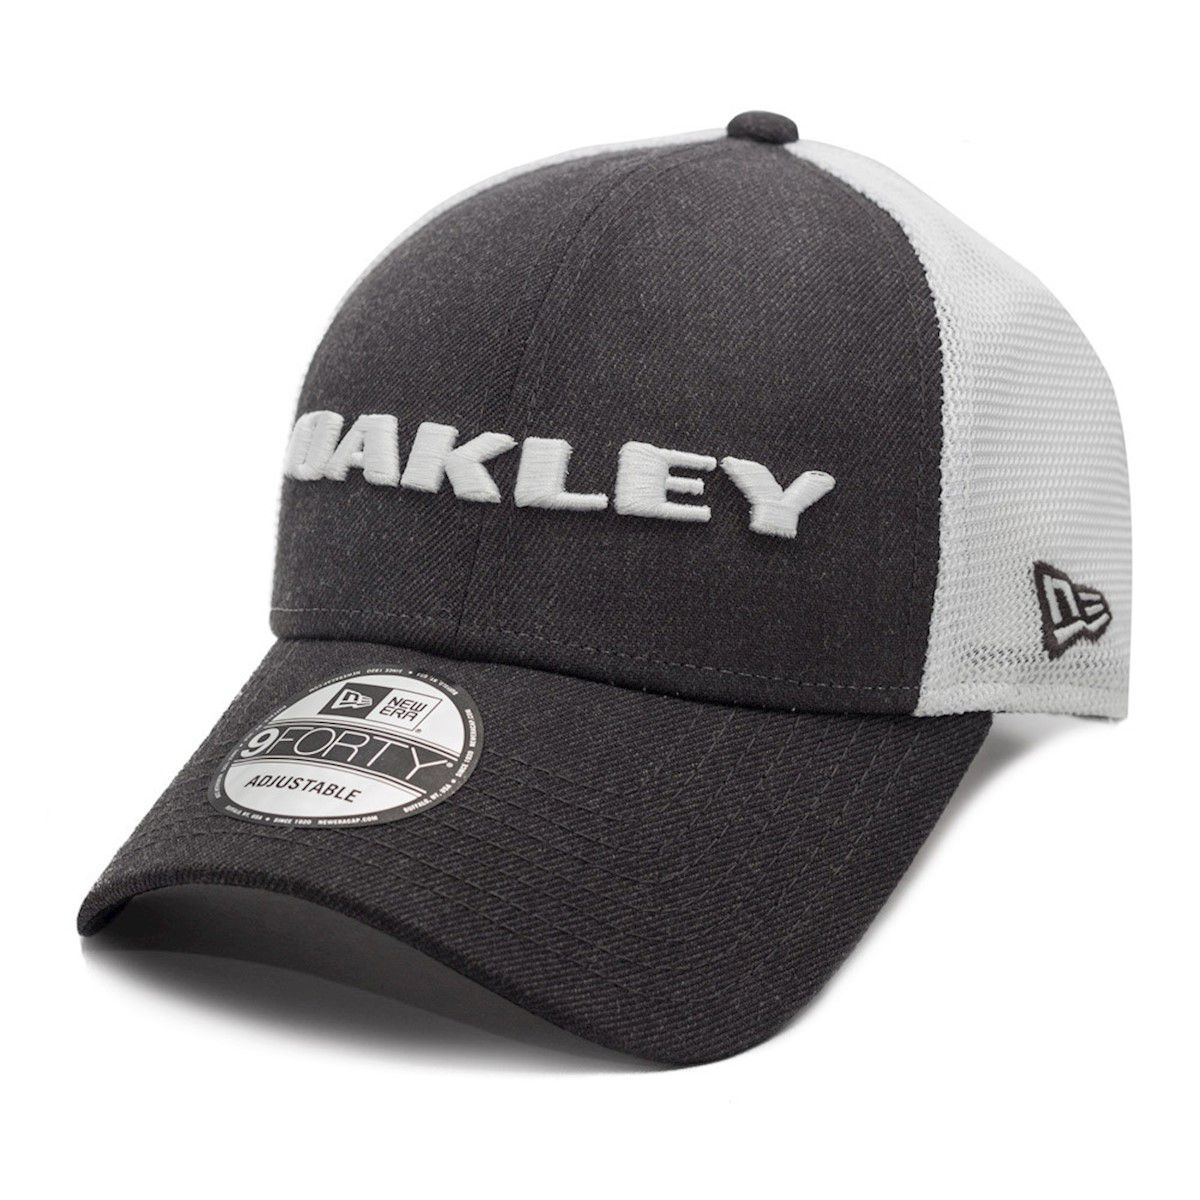 Boné Oakley Heather New Era Hat Graphite